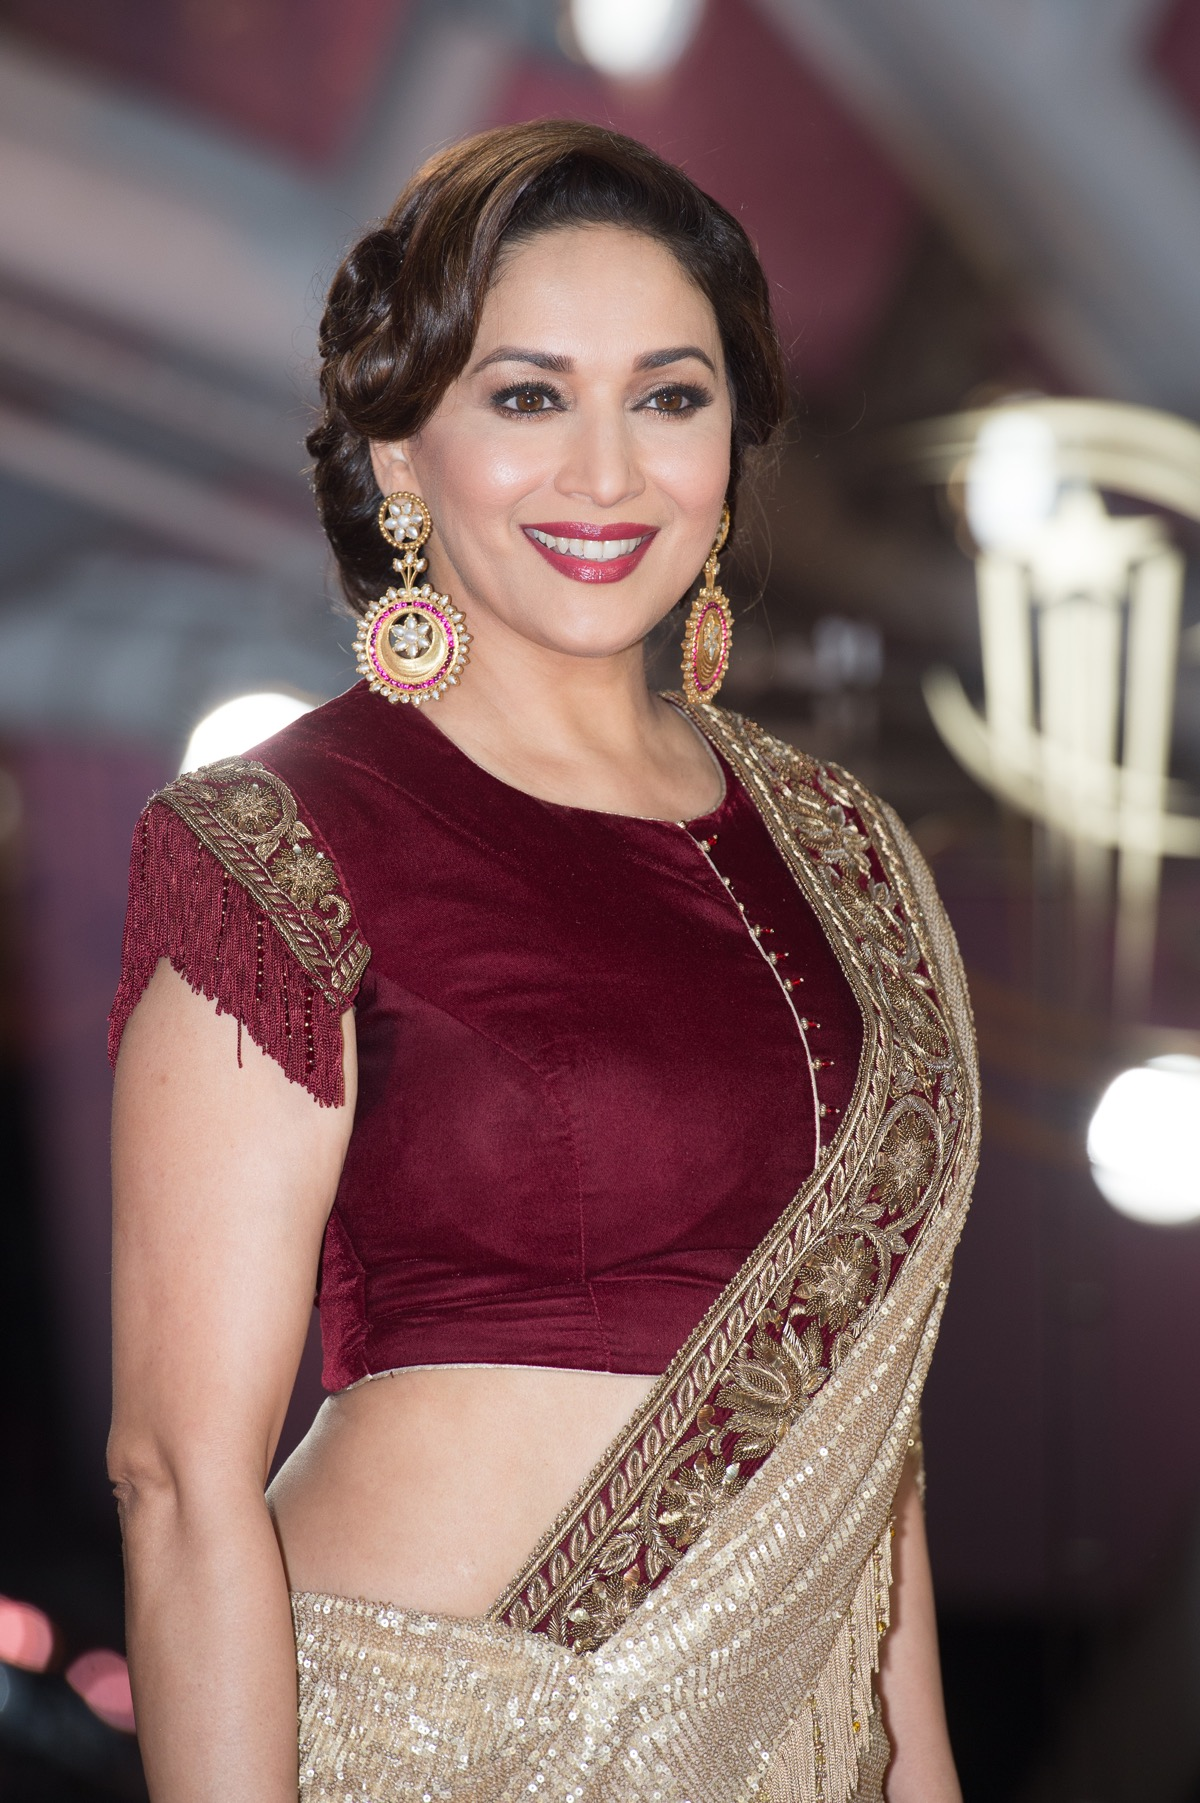 Madhuri Told Name of Cricketer Coming in Her Dreams